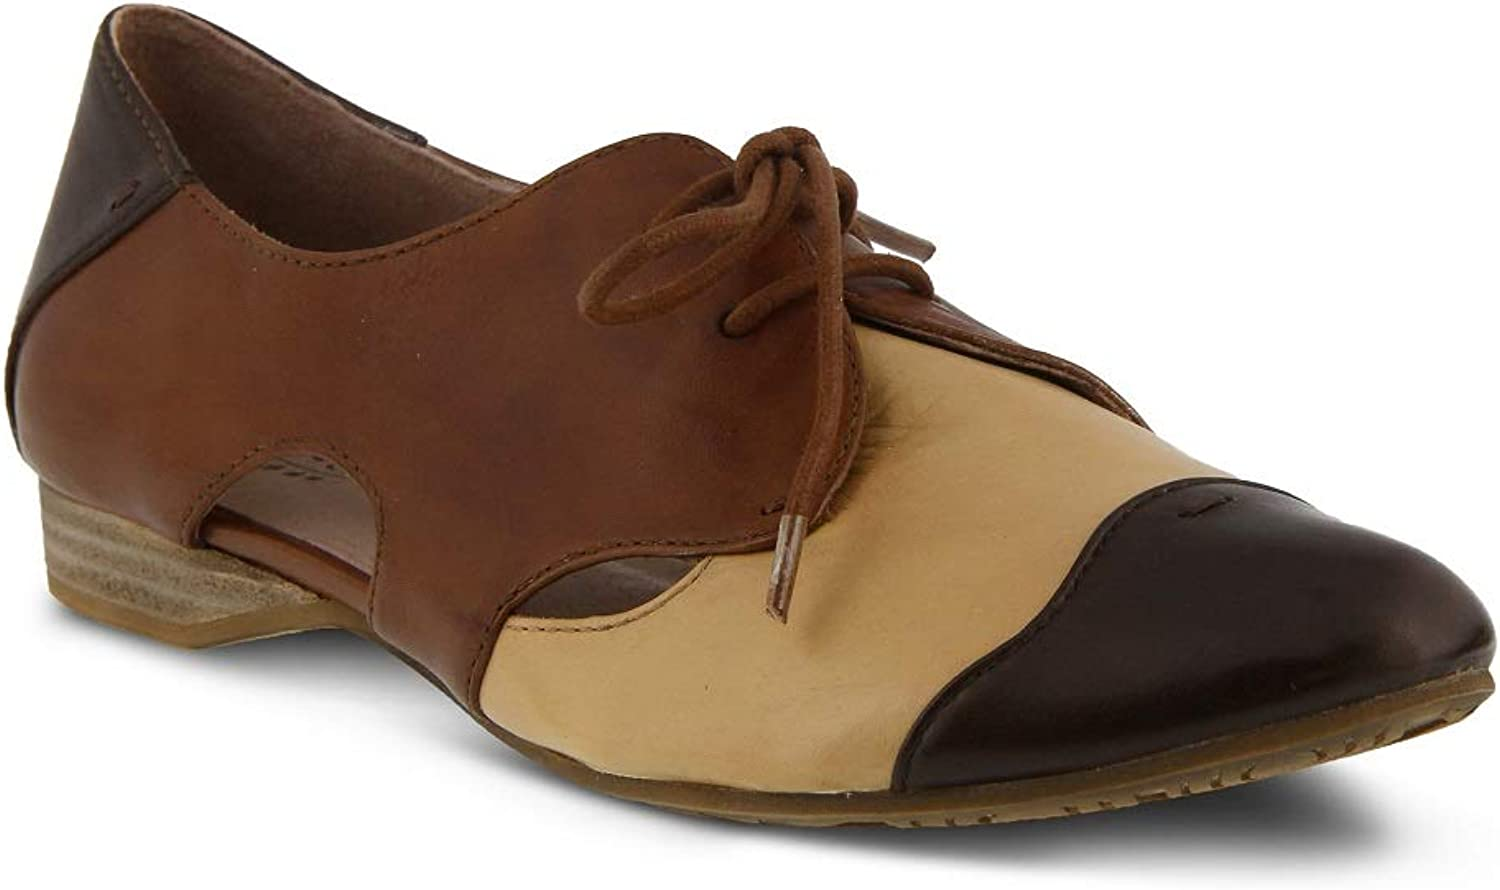 Spring Step Women's Cinzano shoes   color Brown   Leather shoes